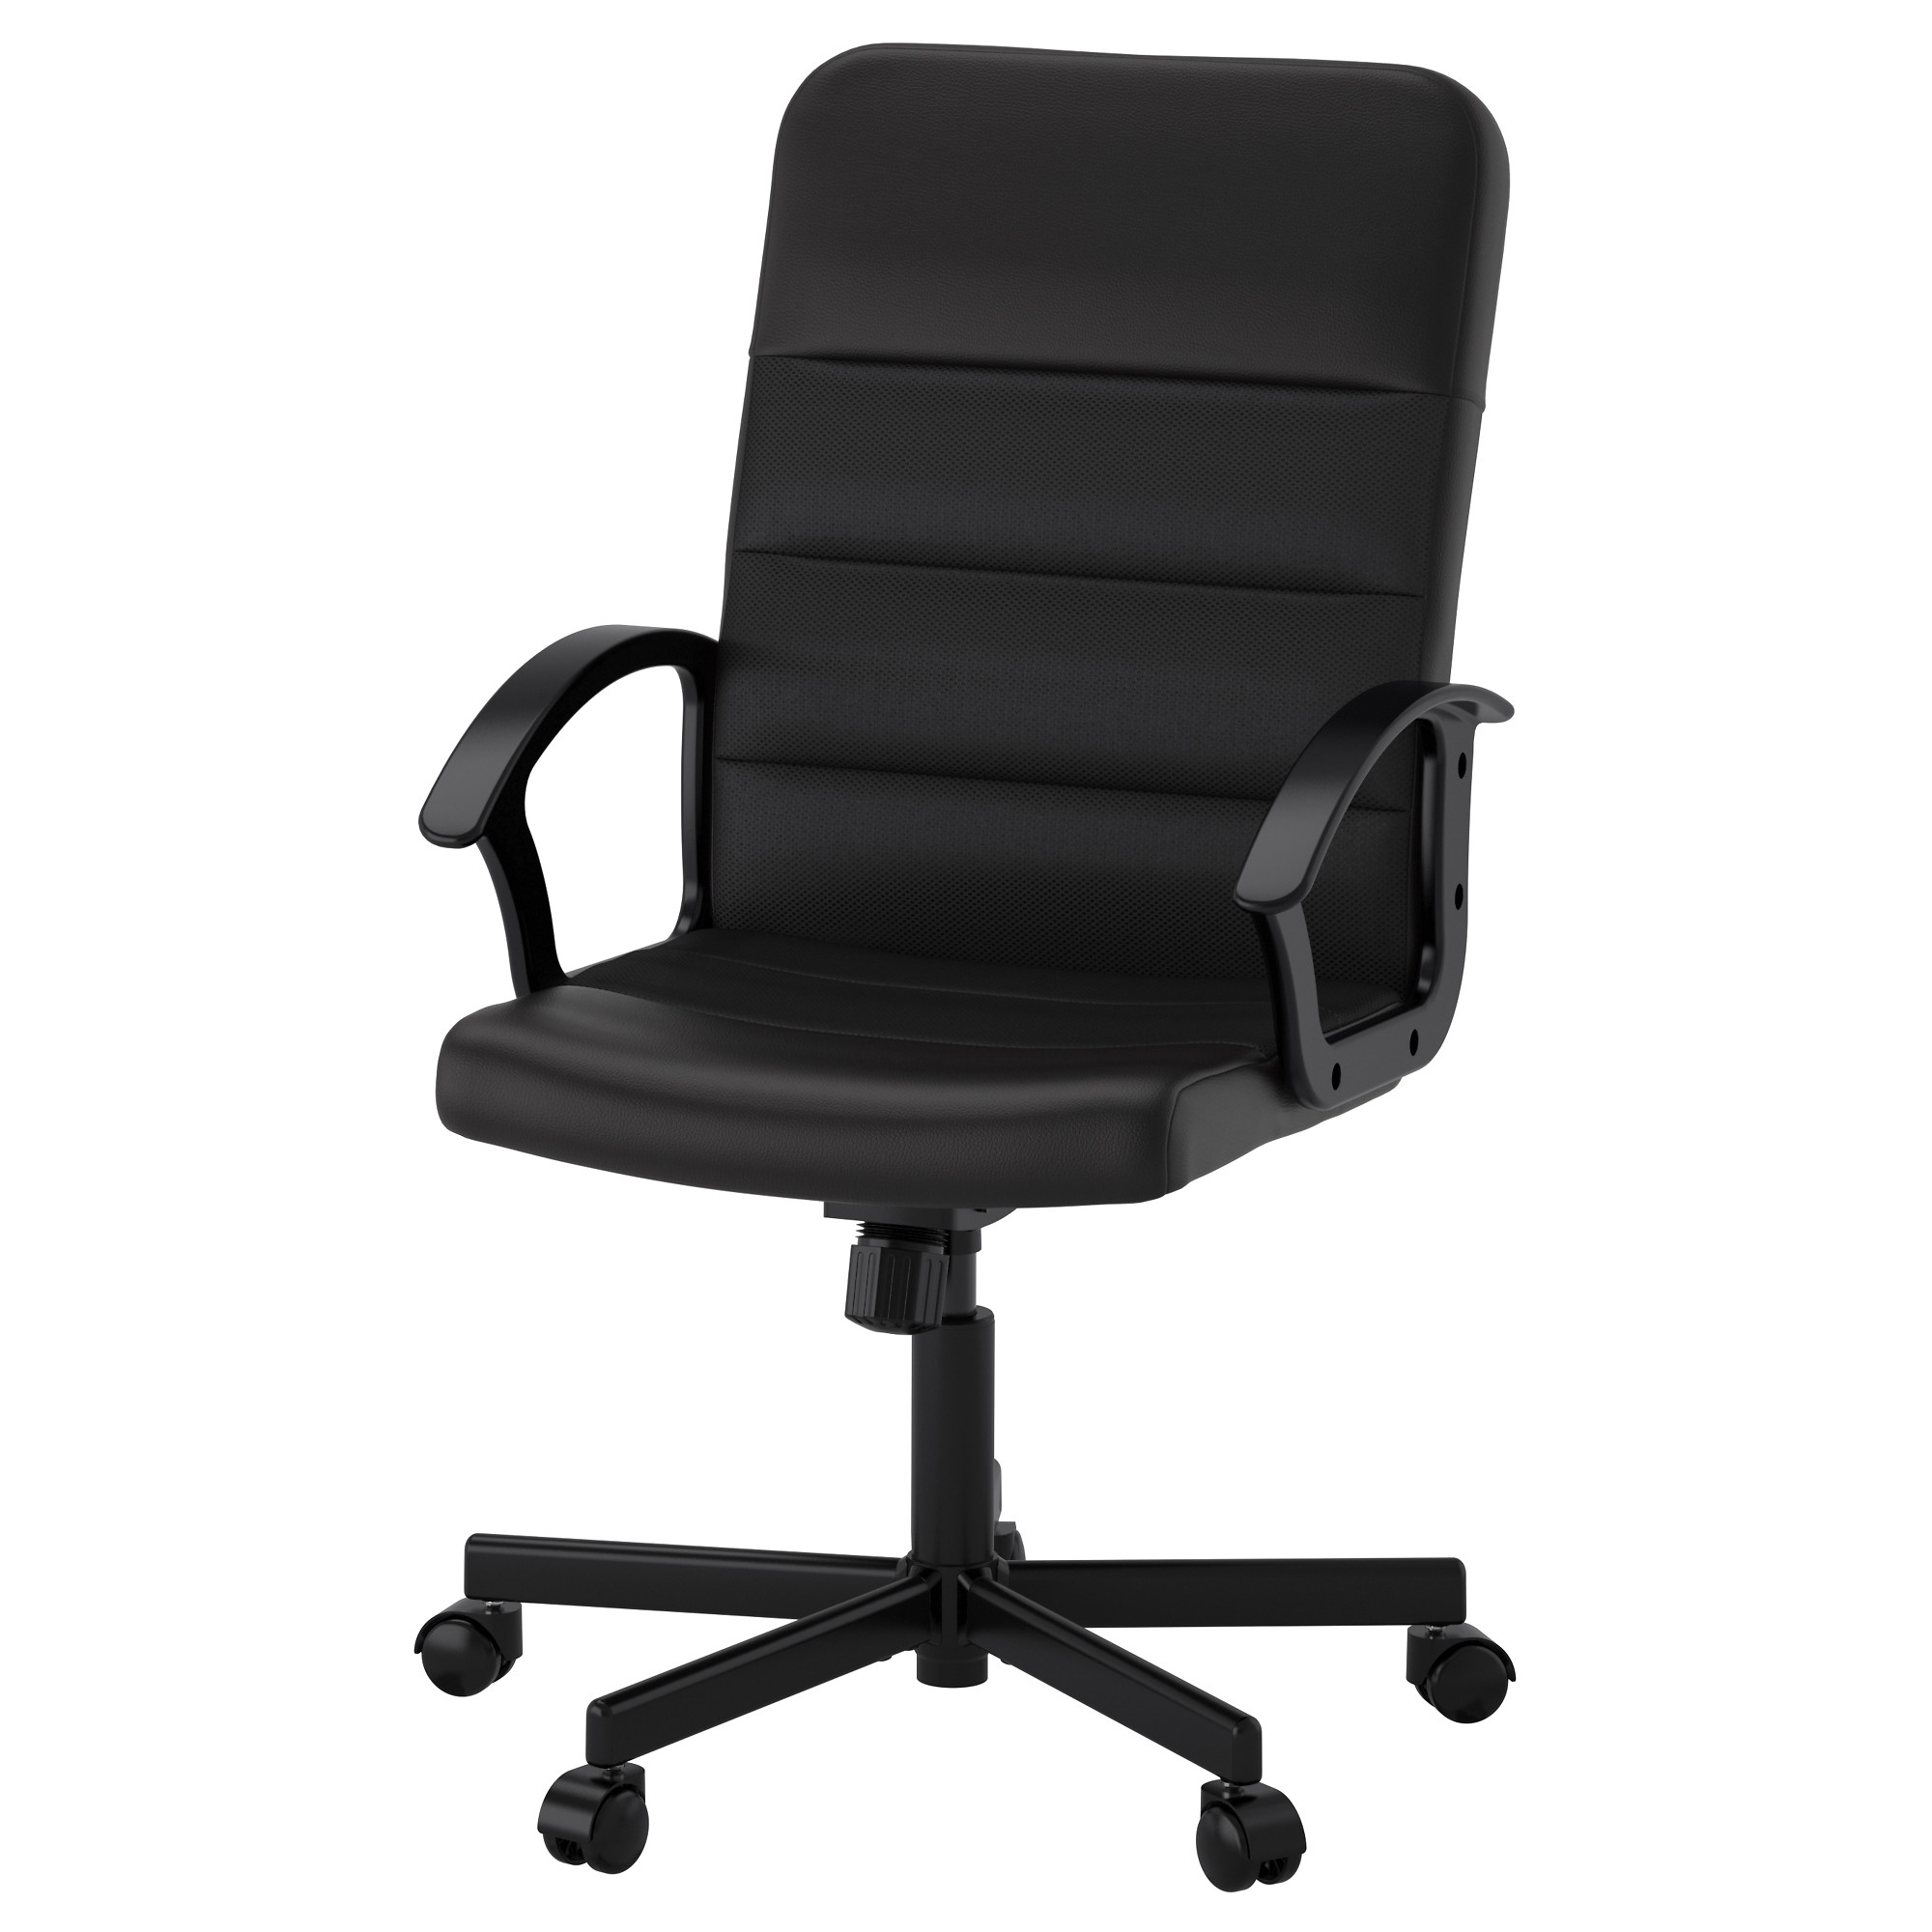 chairs buyable online relevance price range renberget swivel chair bomstad black tested for 242 lb 8 oz width 23